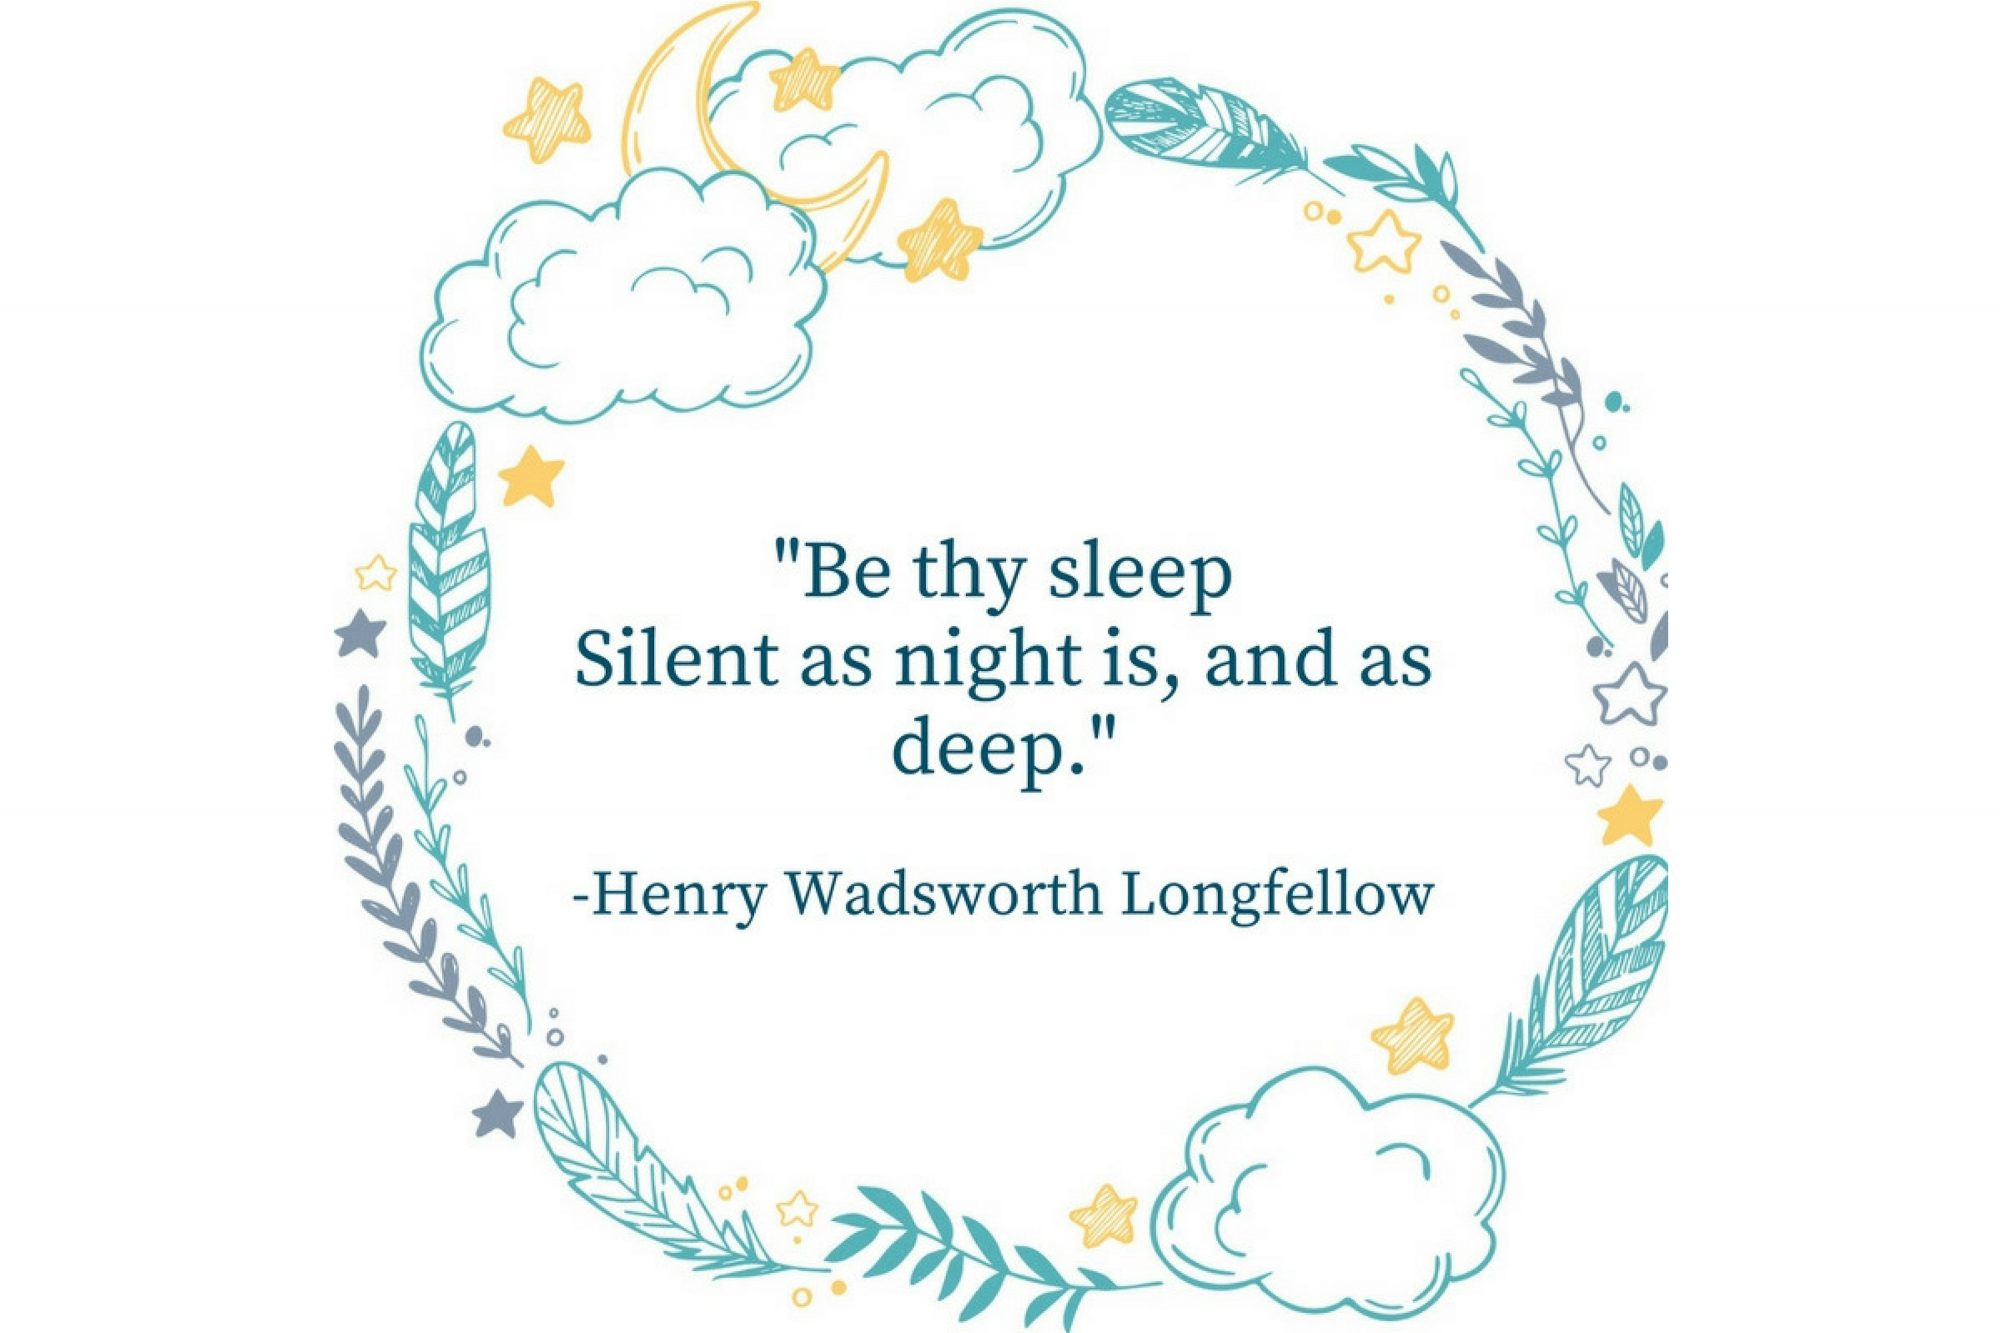 Sleep Tight Quotes Henry Wadsworth Longfellow